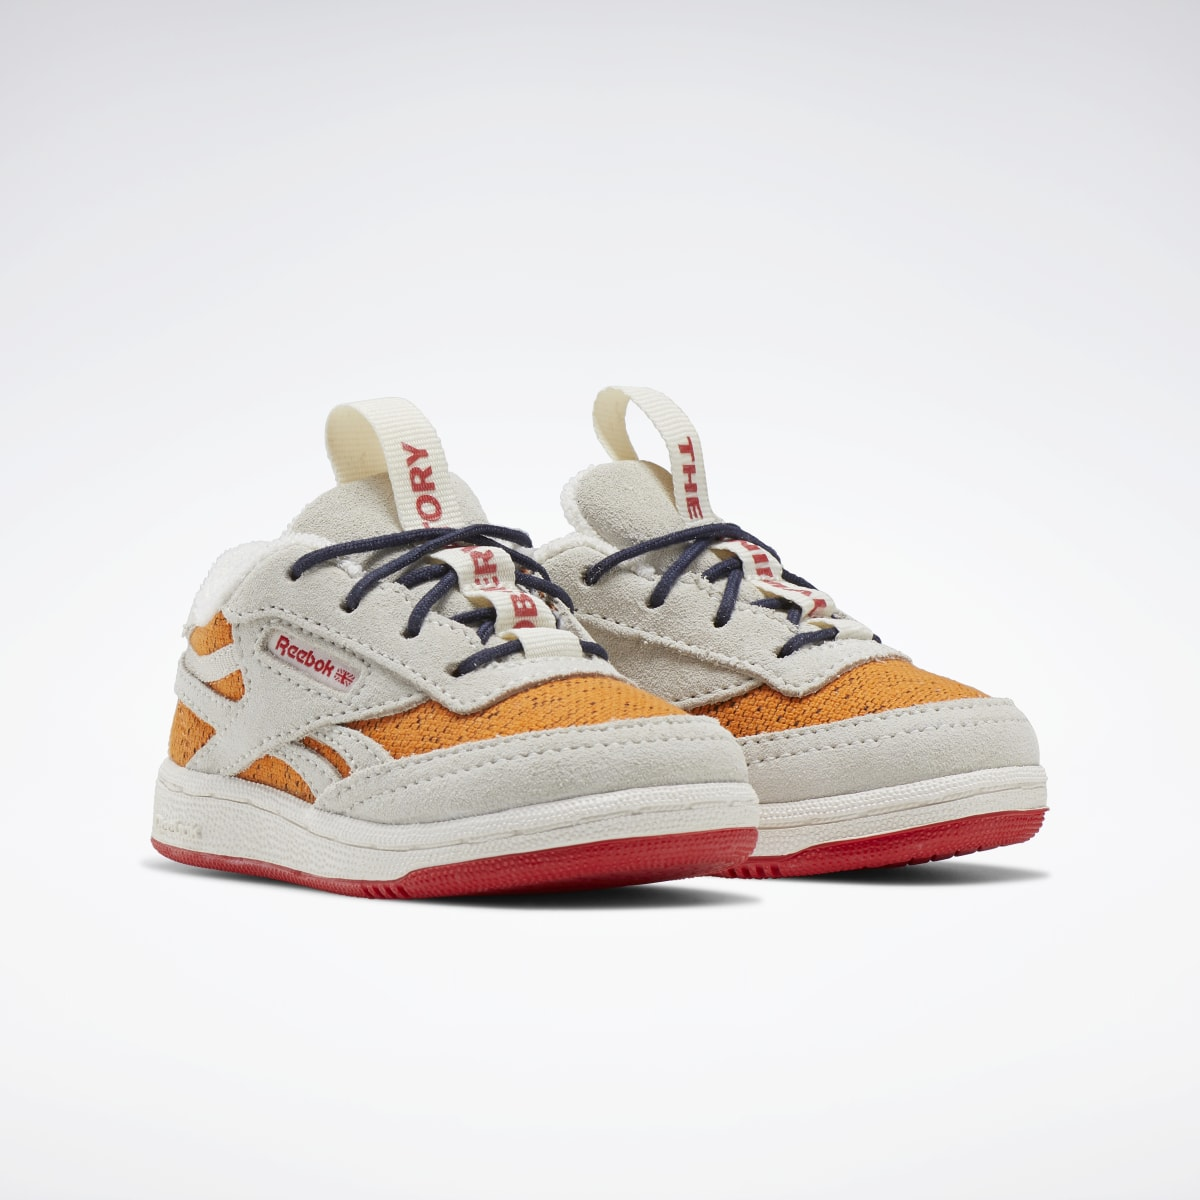 REEBOK The Animals Observatory Club C Revenge Shoes - Toddler